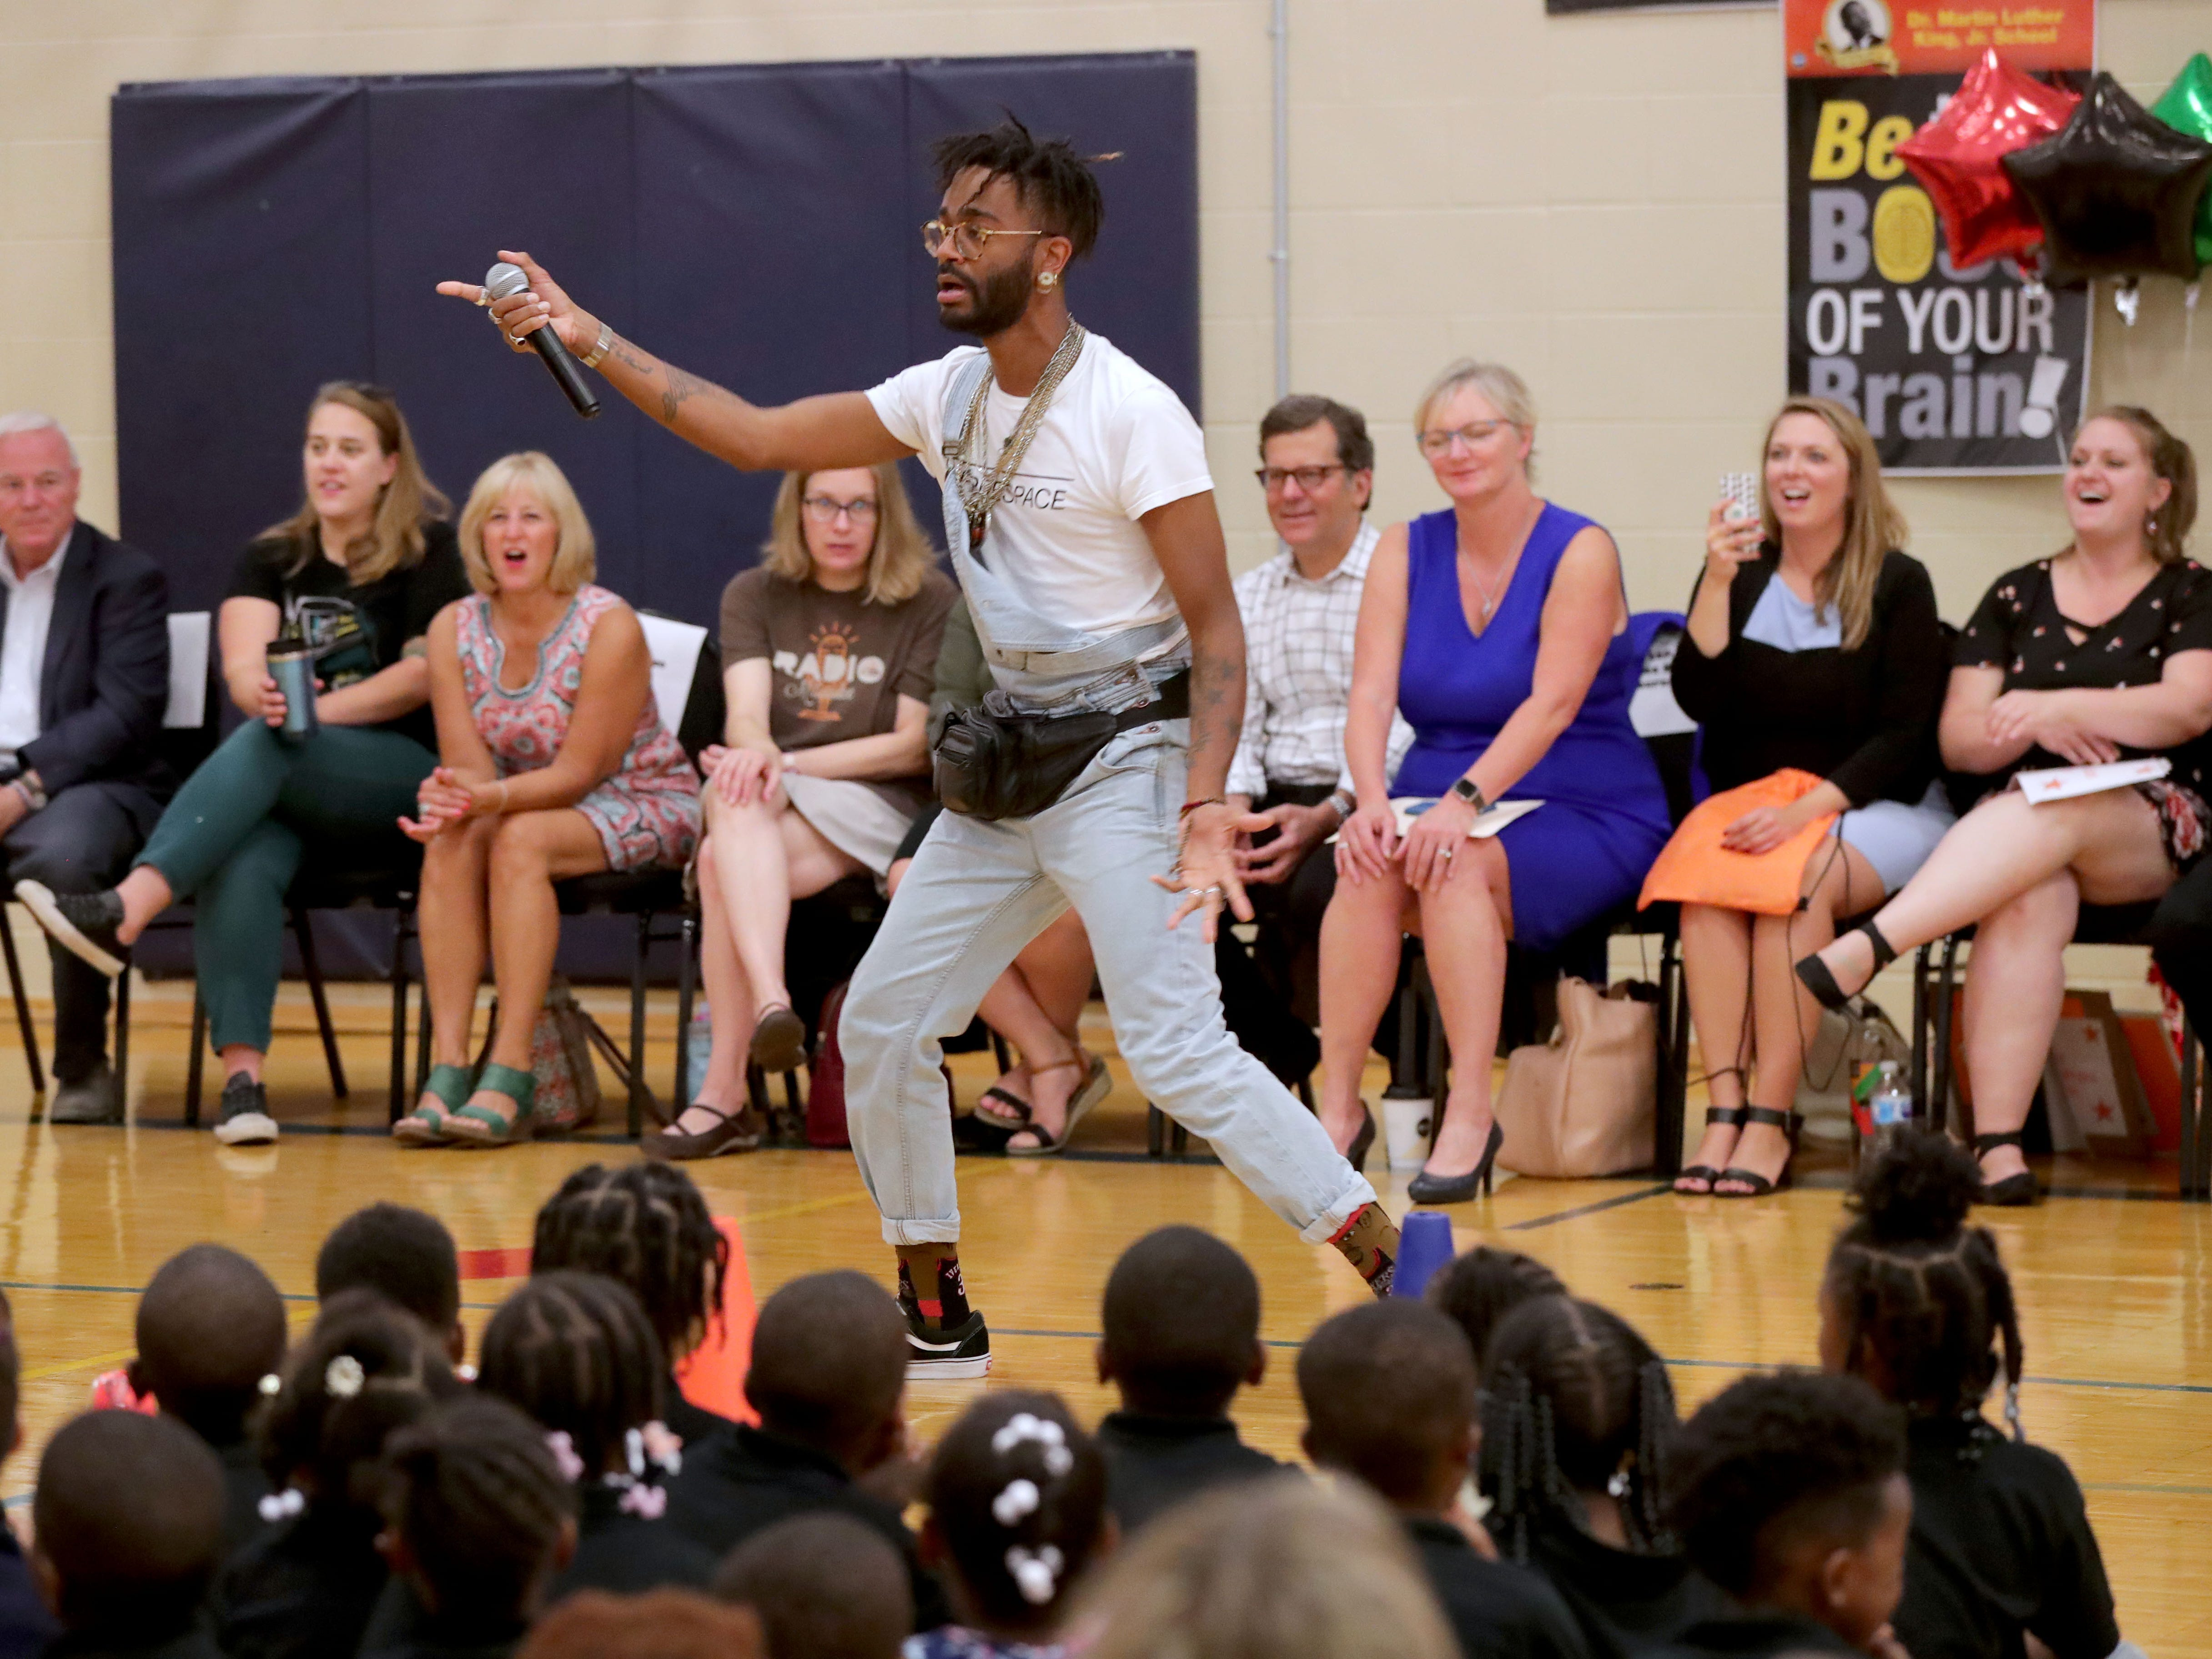 Kellen Abston, the singer and rapper who goes by the stage name Klassik, performs at the assembly before the backpacks were handed out.